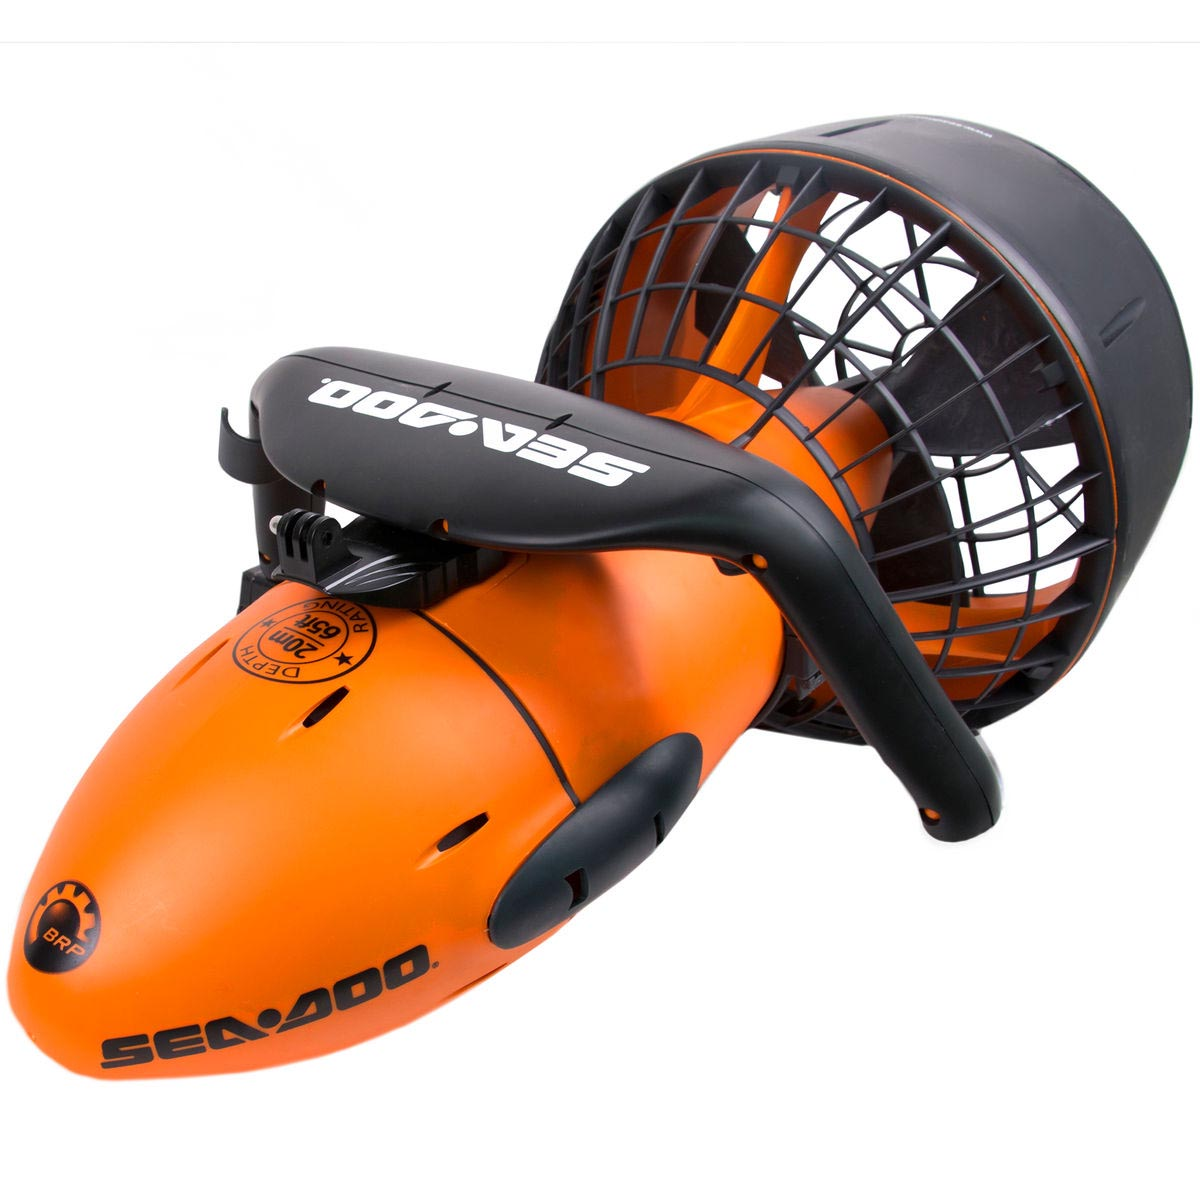 Sea Doo Pro Sea Scooter